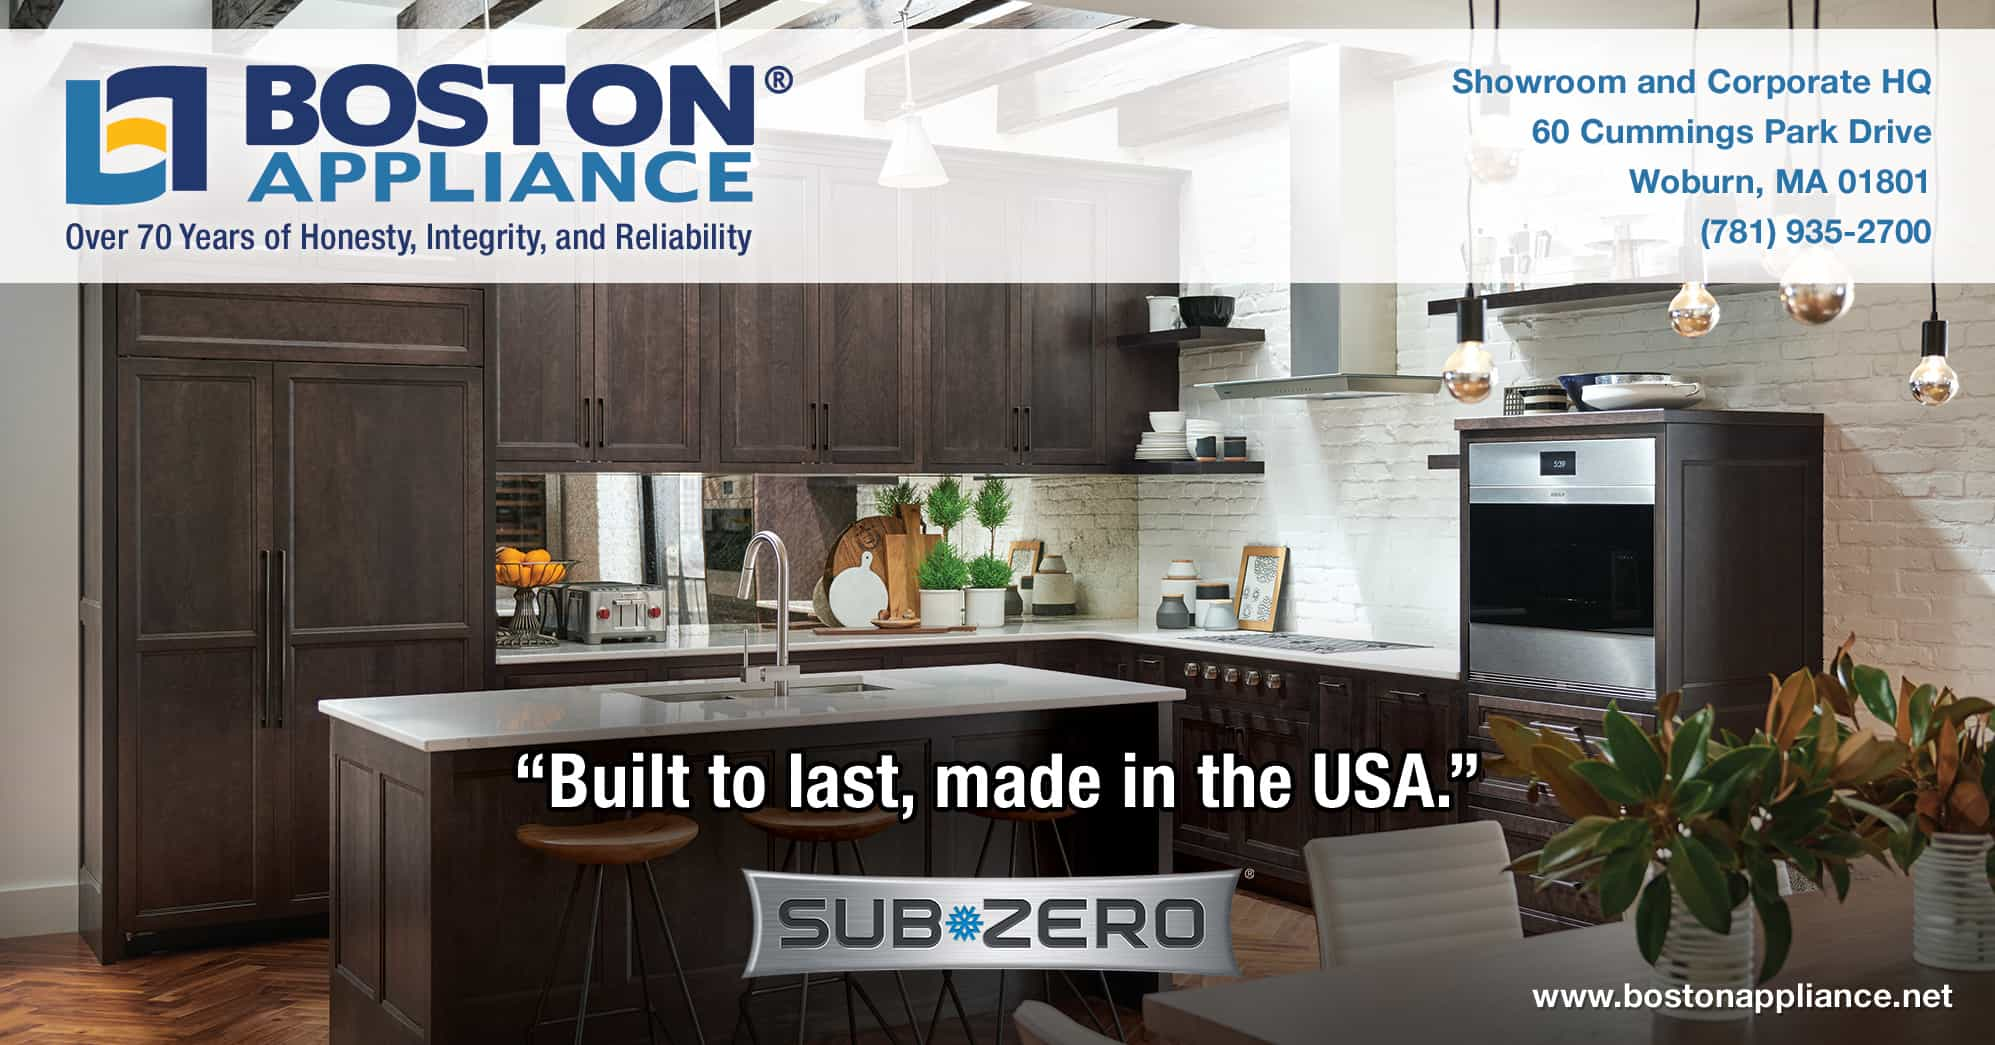 Sub-Zero Refrigerators Built to Last and Made in the USA